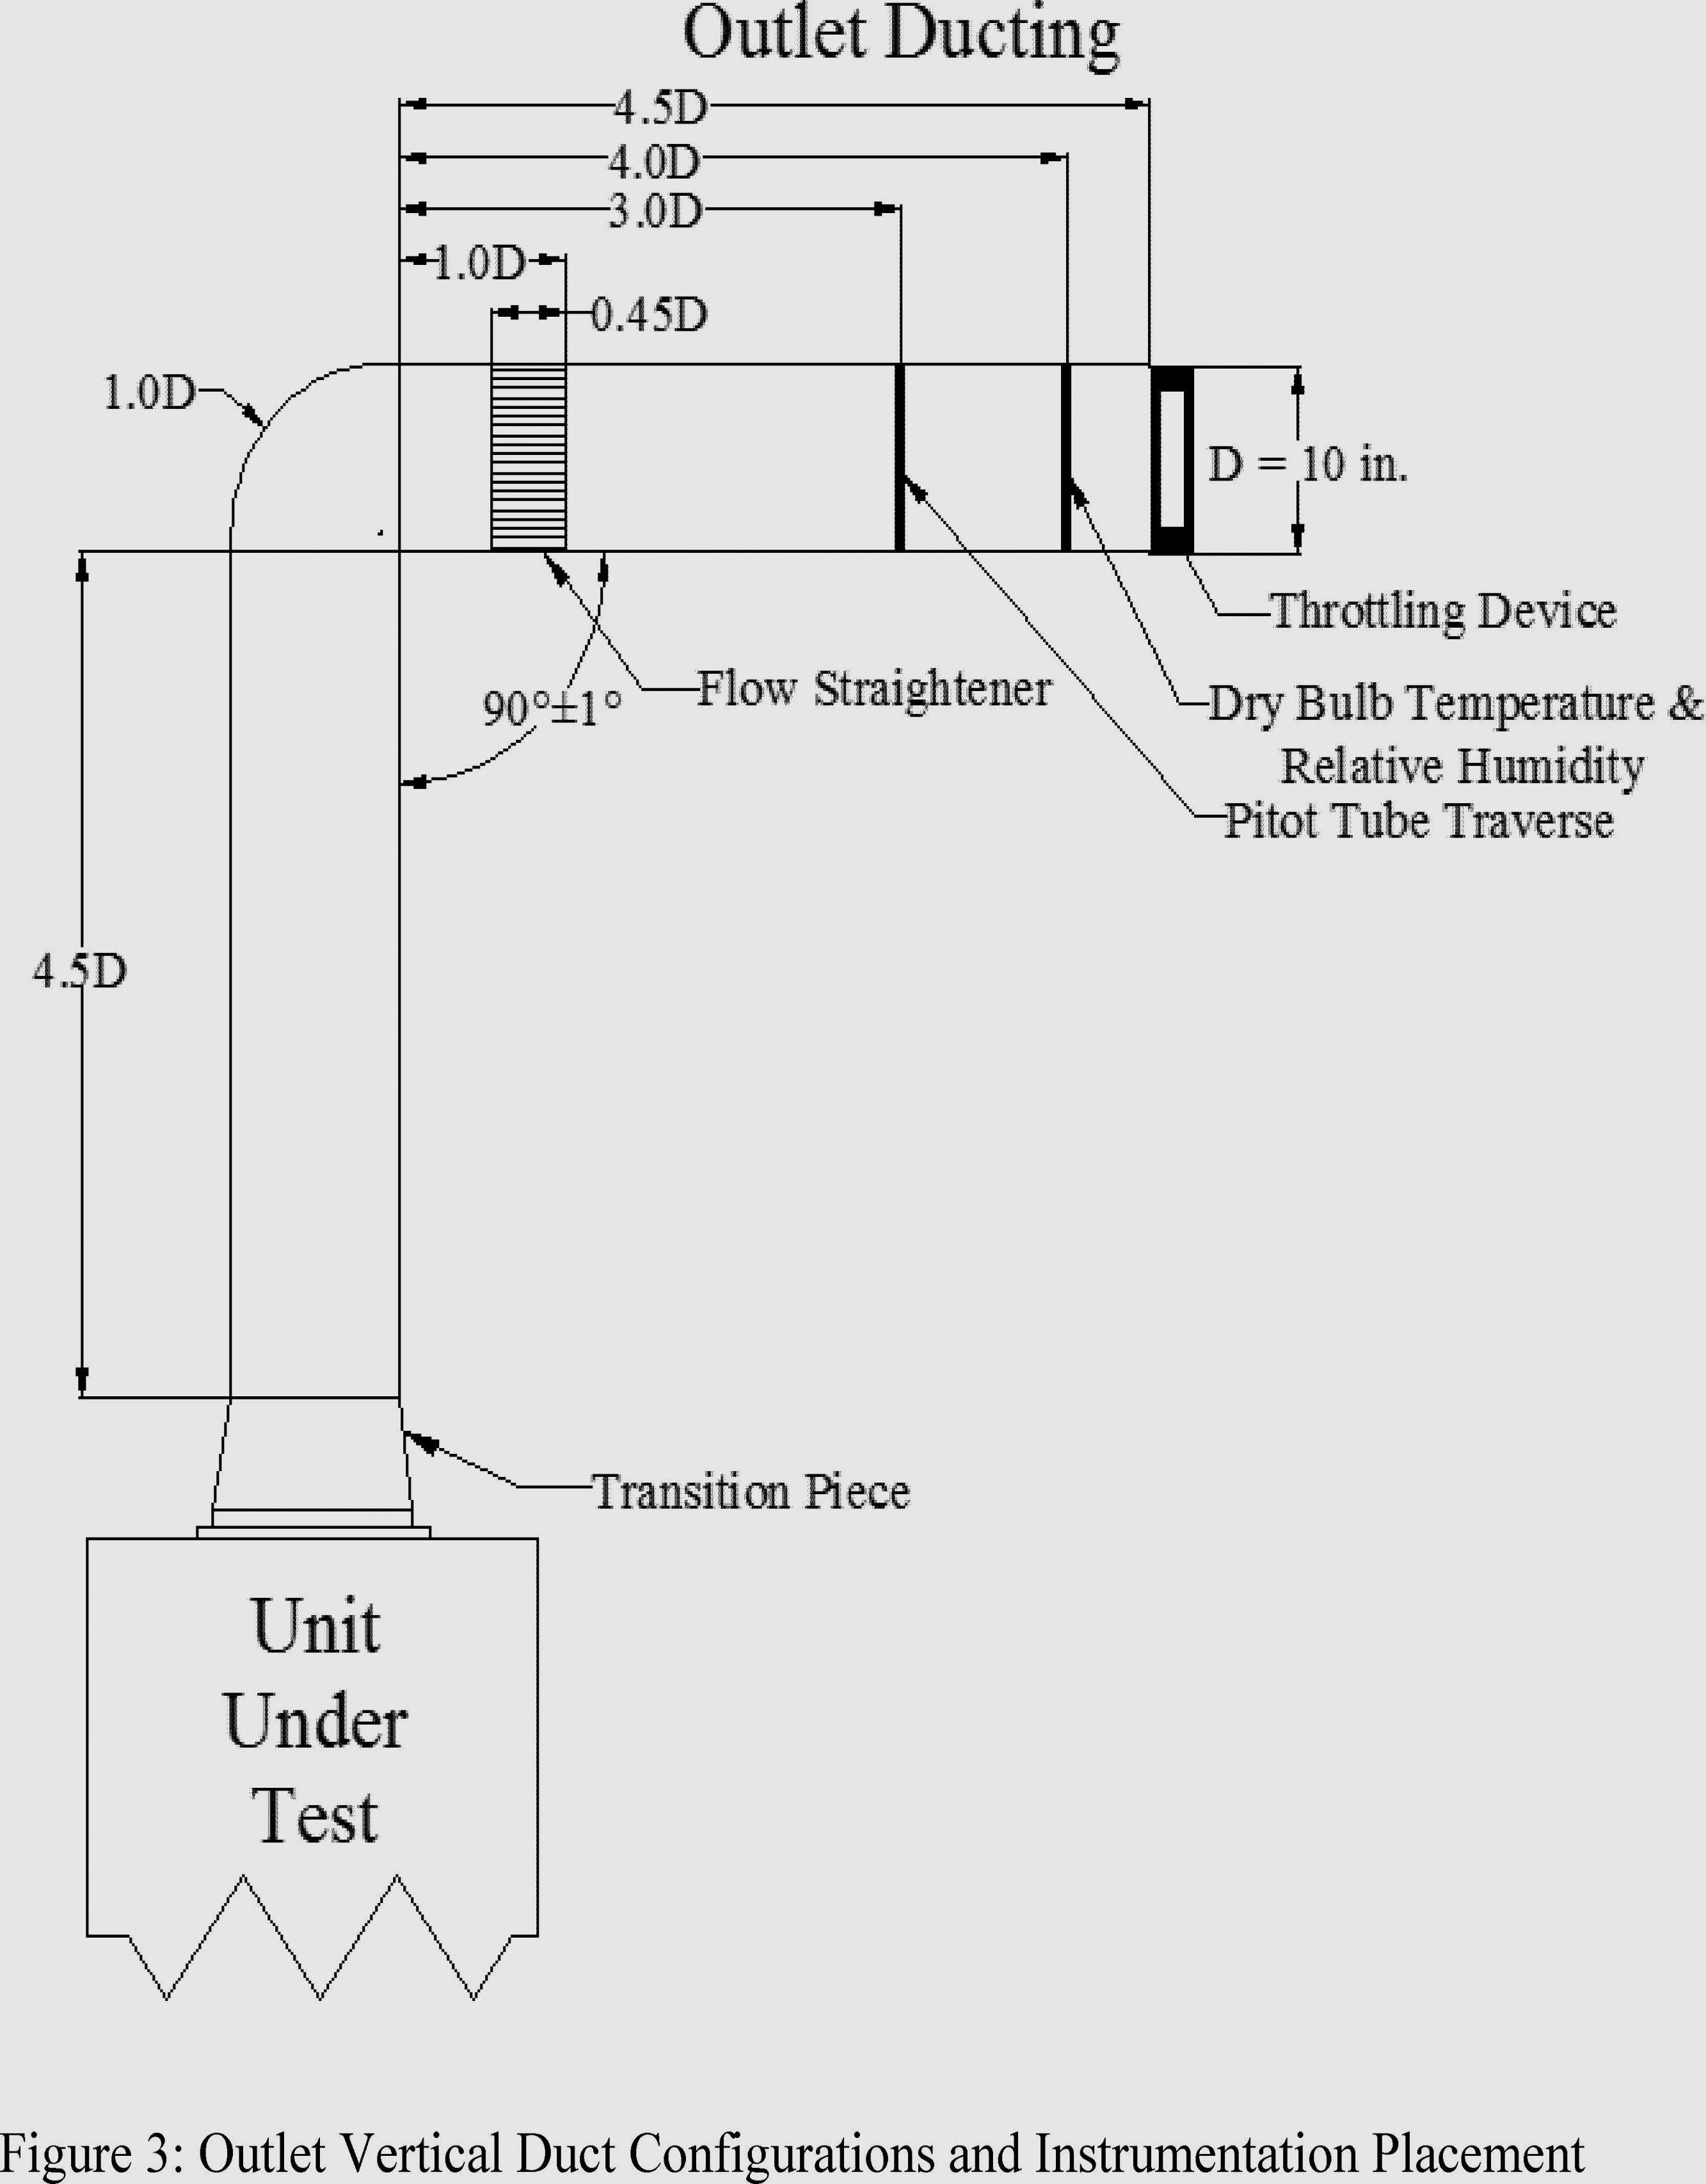 Ethernet Cable Wiring Diagram B4002 House Cat 5 Wiring Diagram Of Ethernet Cable Wiring Diagram